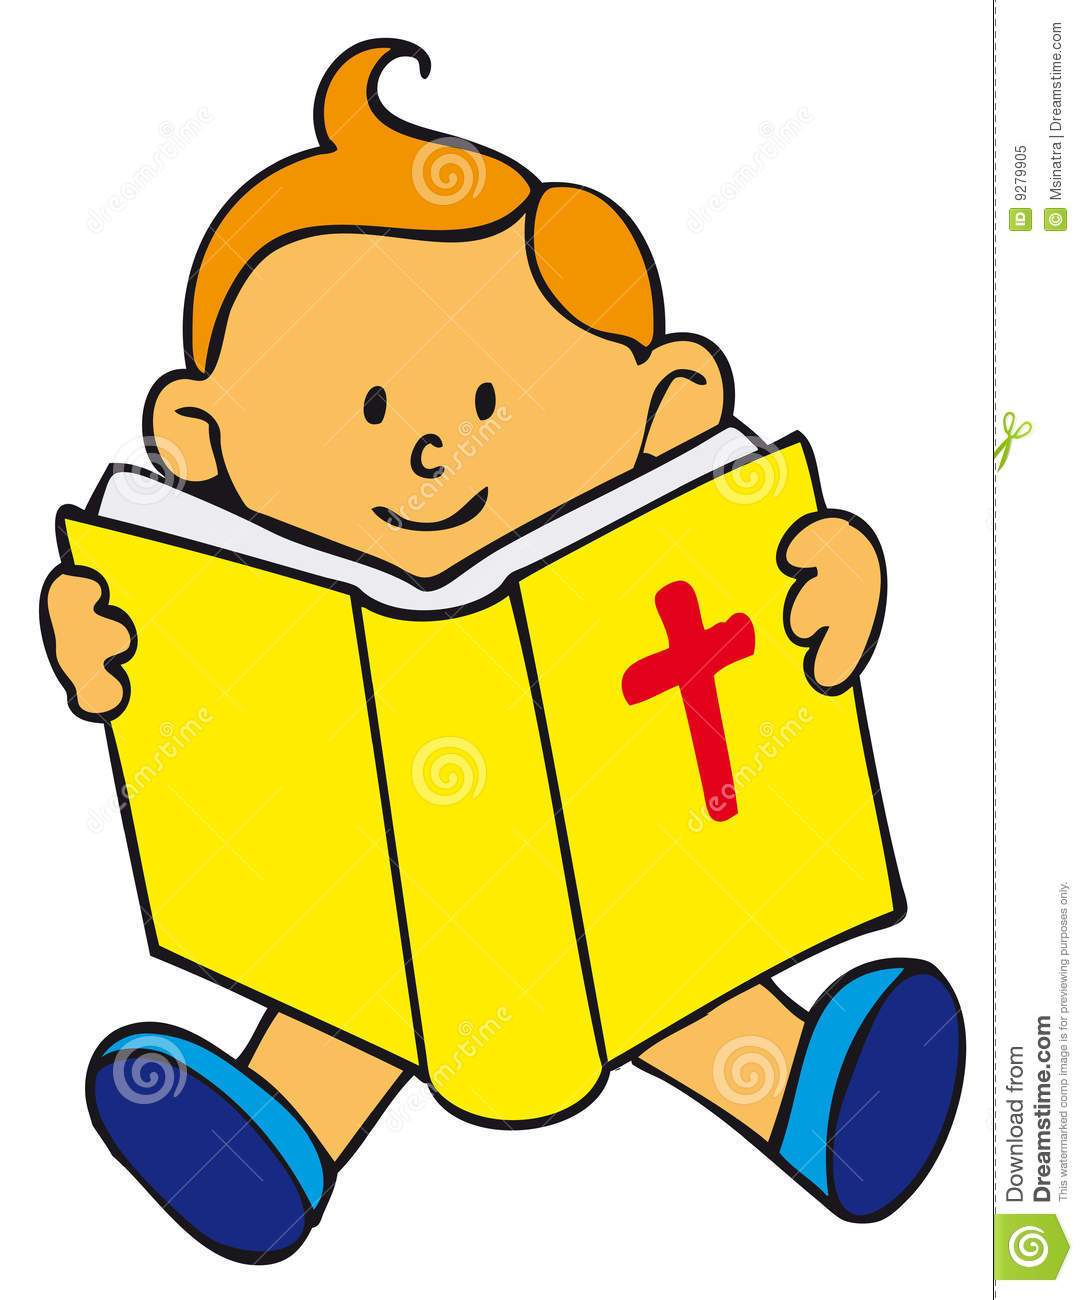 Bible clipart for kids 4 » Clipart Portal.